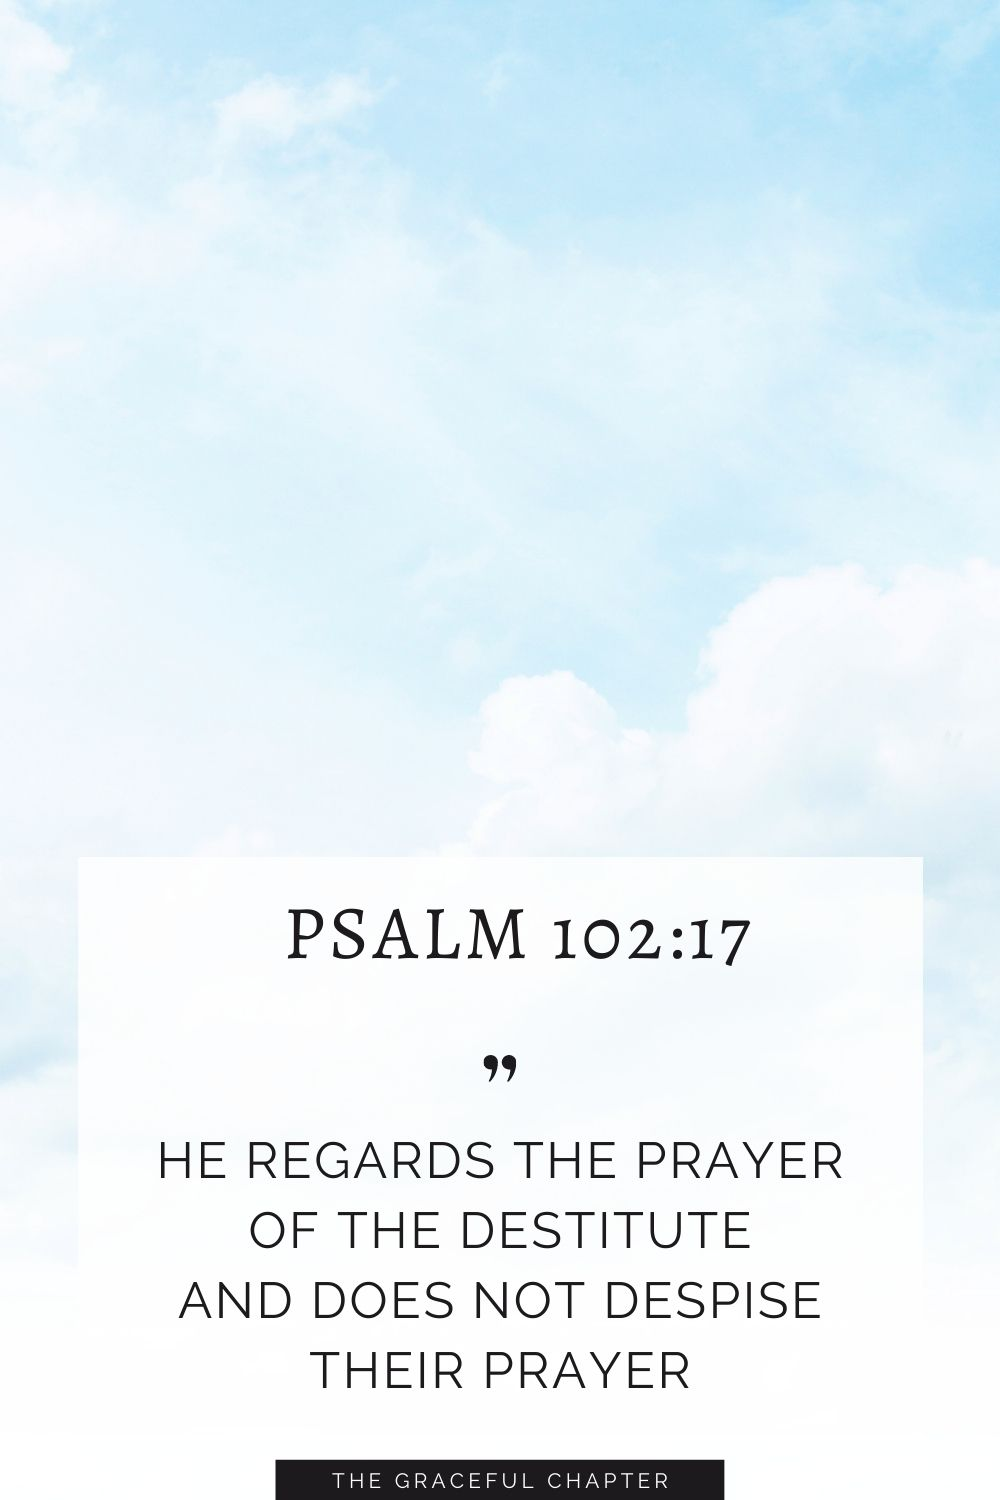 He regards the prayer of the destitute and does not despise their prayer. Psalm 102:17